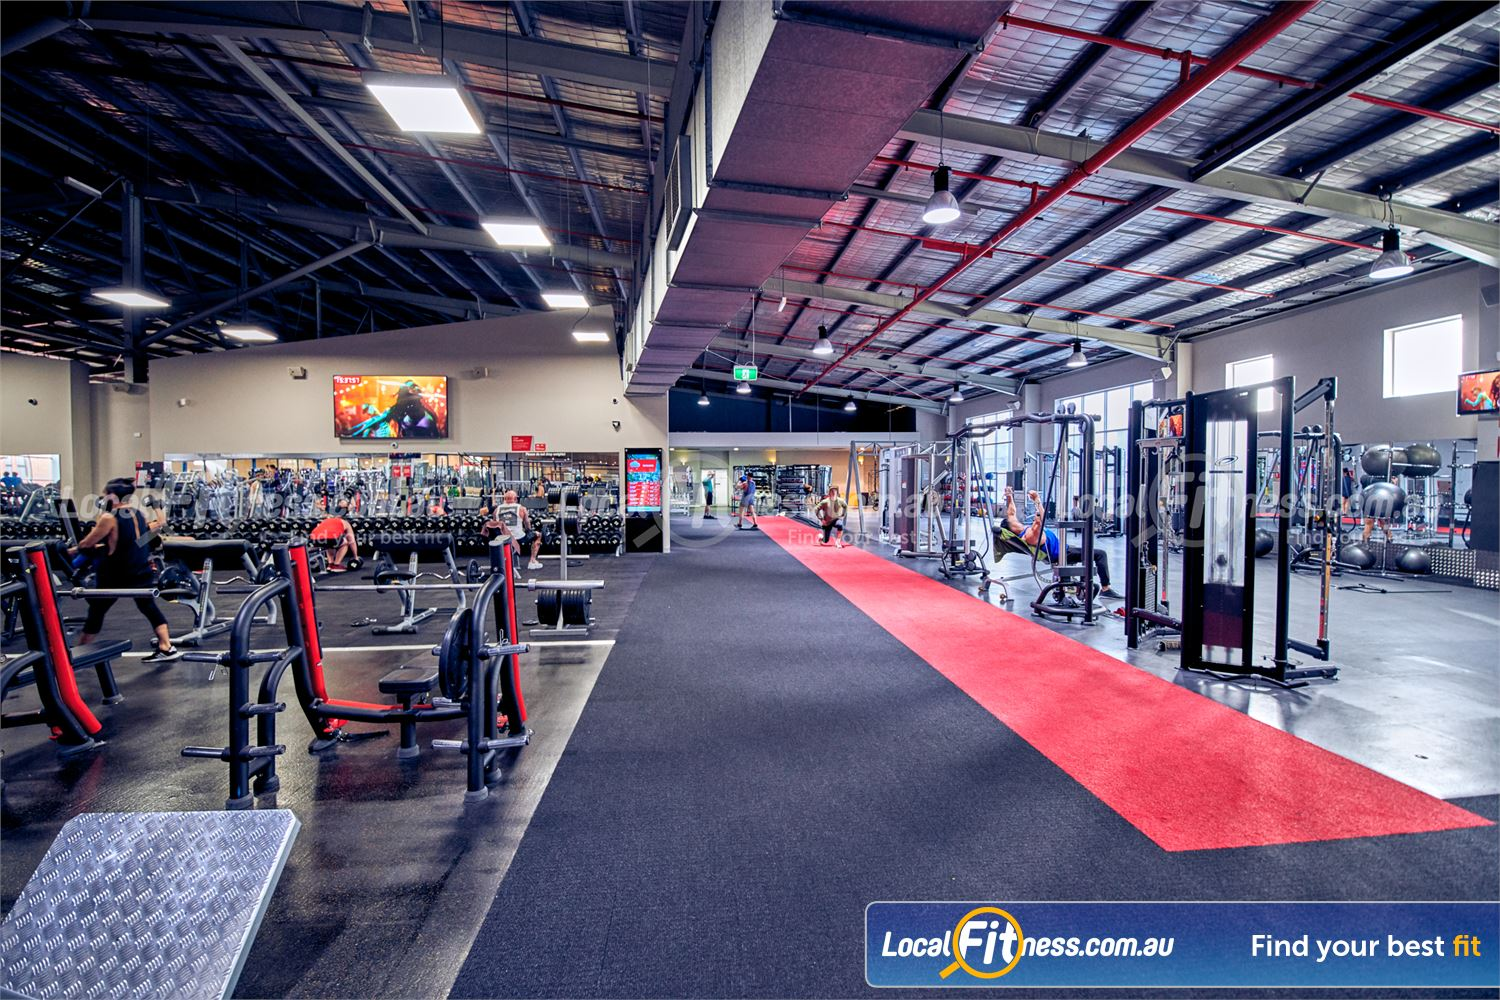 Fitness First Platinum Richmond The spacious Richmond gym free-weights and functional areas are conveniently located side-by-side.